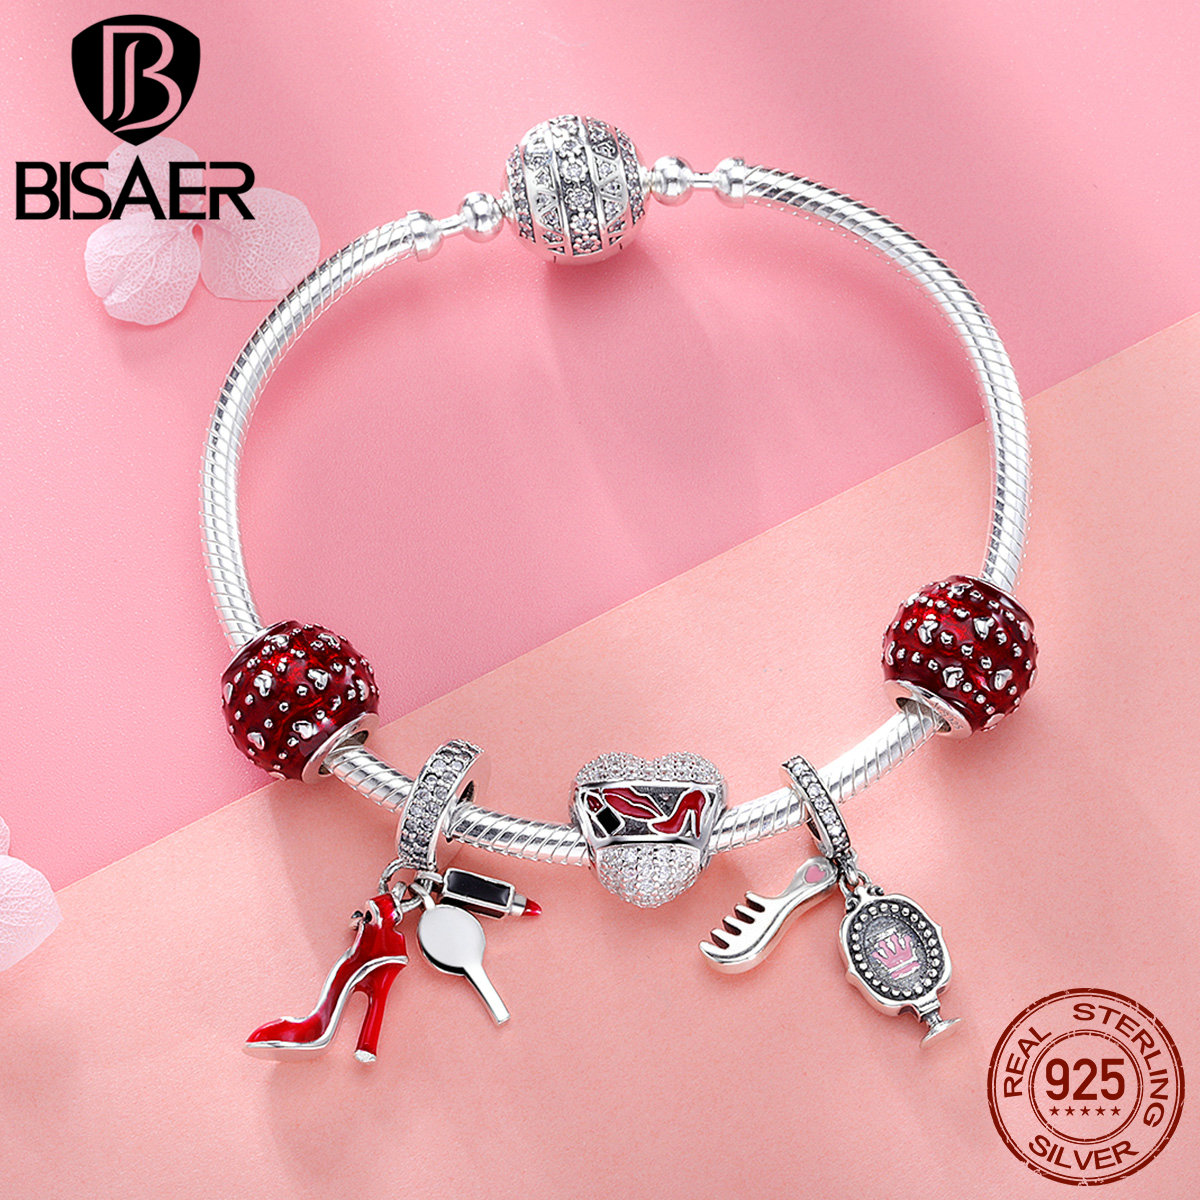 BISAER Authentic 925 Sterling Silver Red High Heels Pendant With Heart Beads Brand Silver Charm Bracelet For Women Gift GXB802 bisaer 7pcs 925 sterling silver heart key and locket heart pendant brand charm bracelet for women wedding silver bangle gxb811